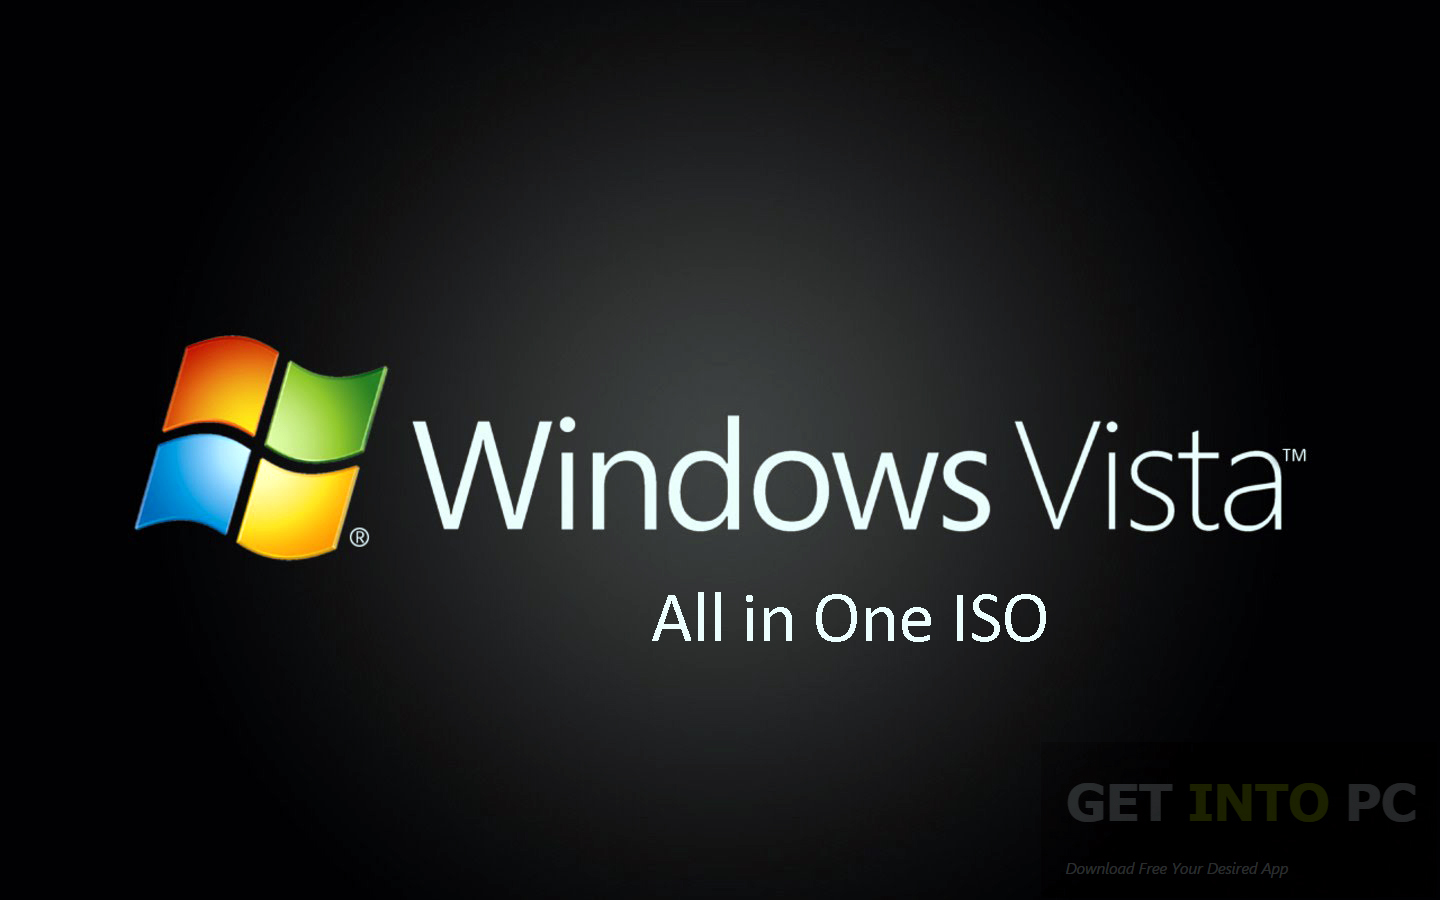 windows vista all in one iso